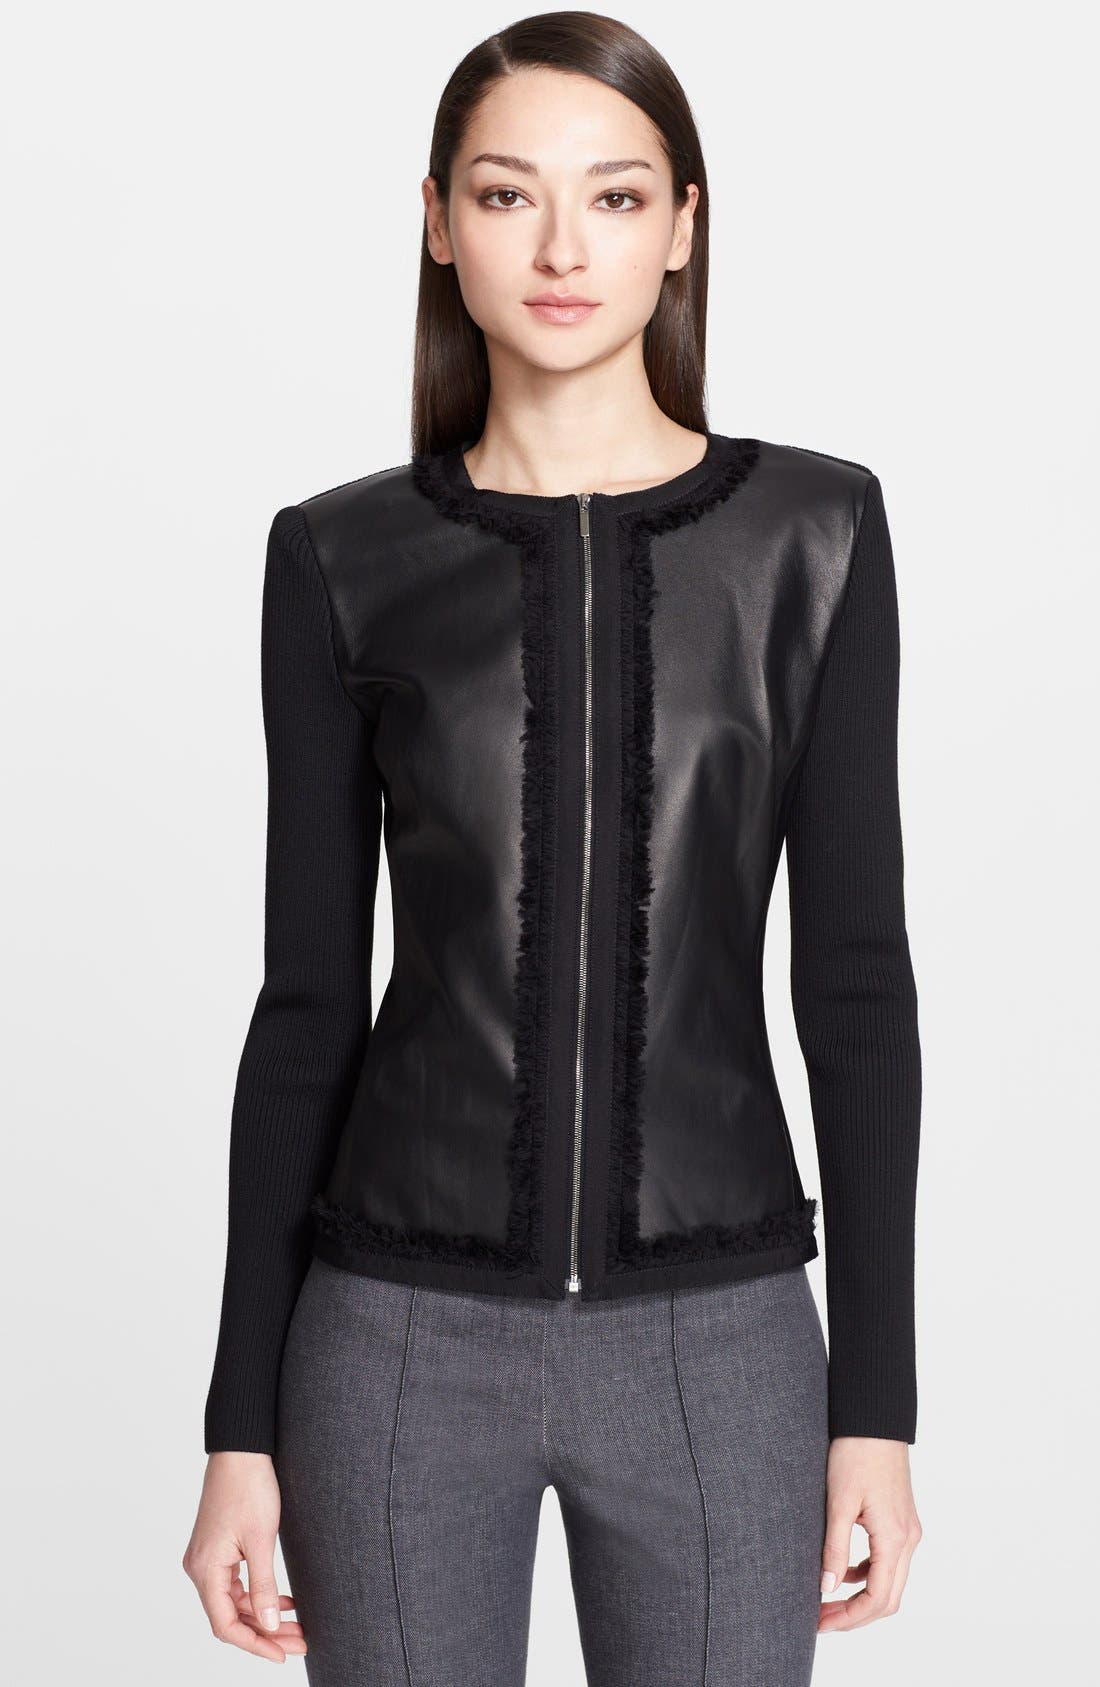 Main Image - St. John Collection Leather & Milano Knit Jacket with Organza Trim